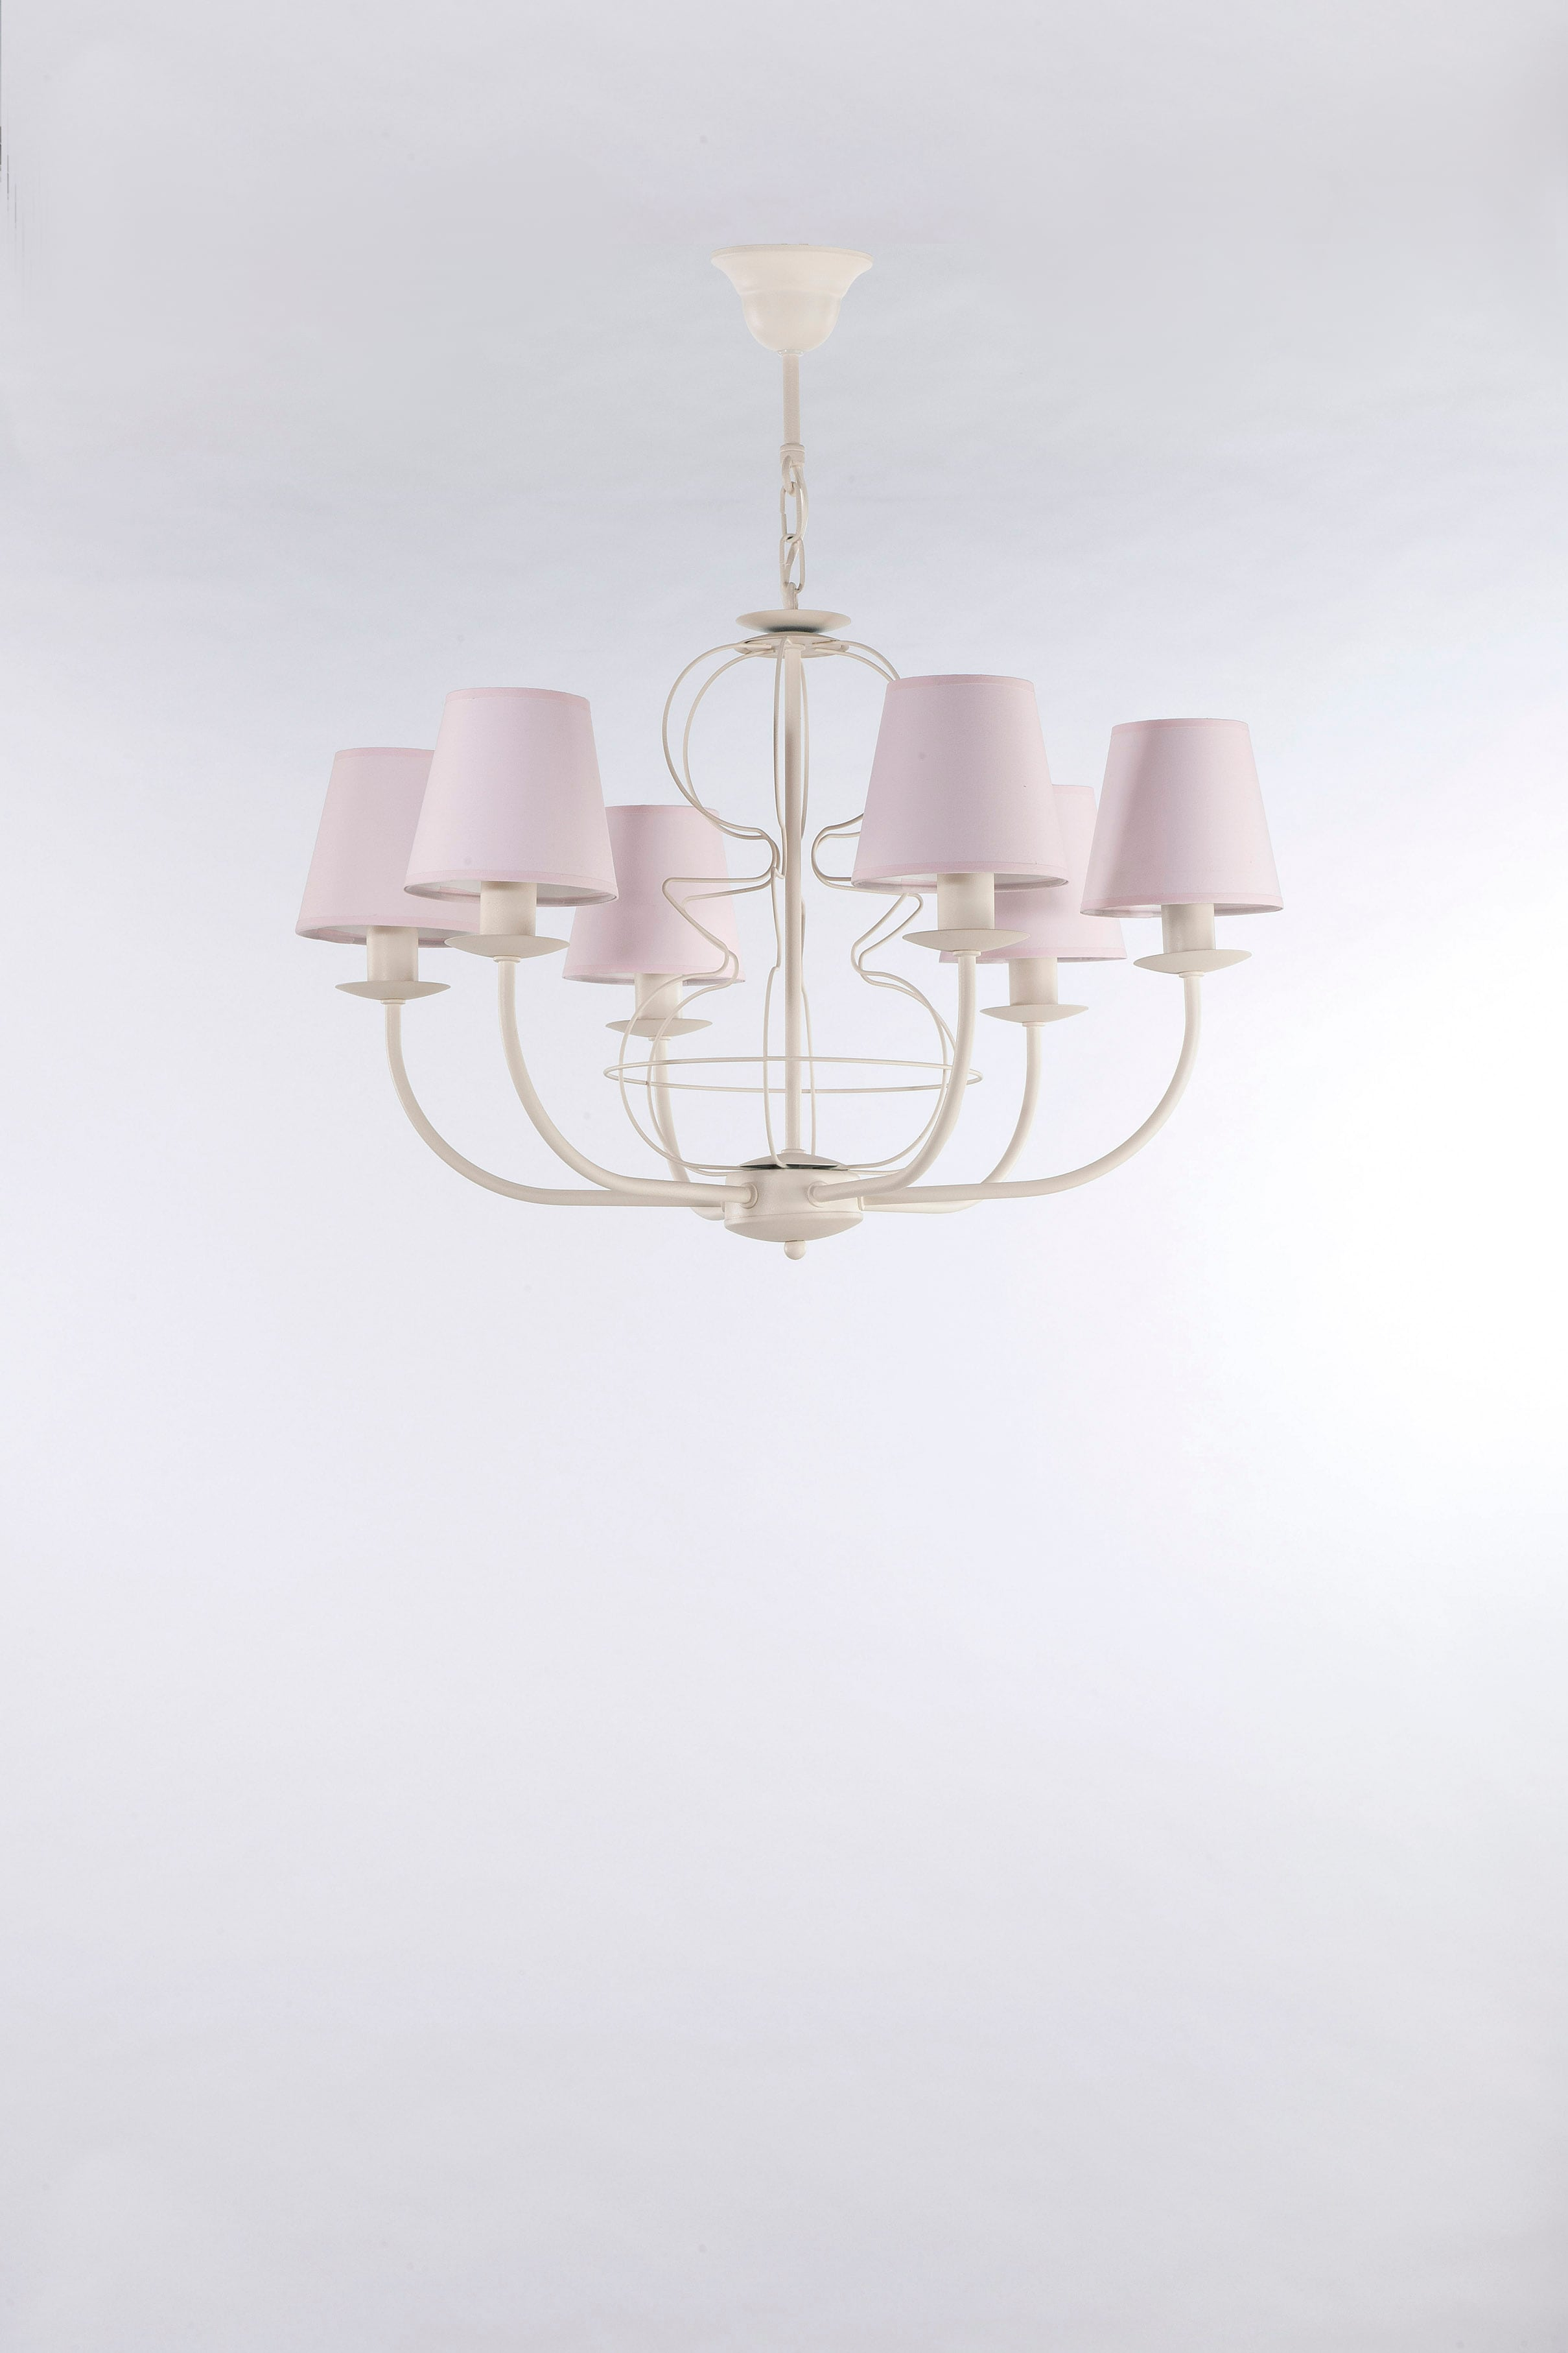 Hanging lamp FIORA CREAM 6 No. 3267